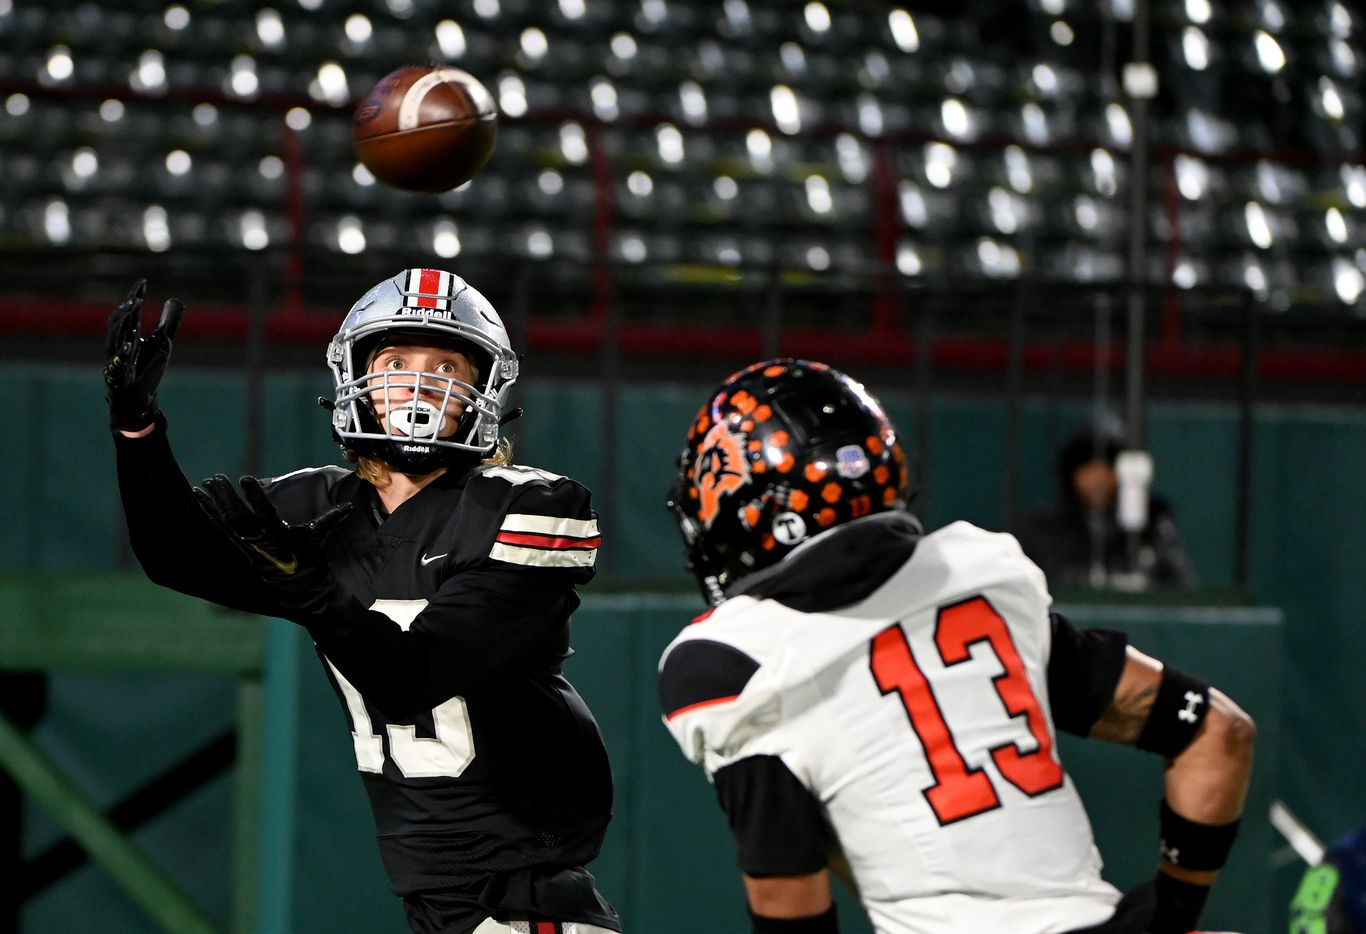 Lovejoy's Luke Mayfield catches a touchdown pass over Aledo's Logan Flinta in the second quarter of the Class 5A Division II Region II final high school football game between Aledo and Lovejoy, Friday, Jan. 1, 2021, in Arlington, Texas. (Matt Strasen/Special Contributor)